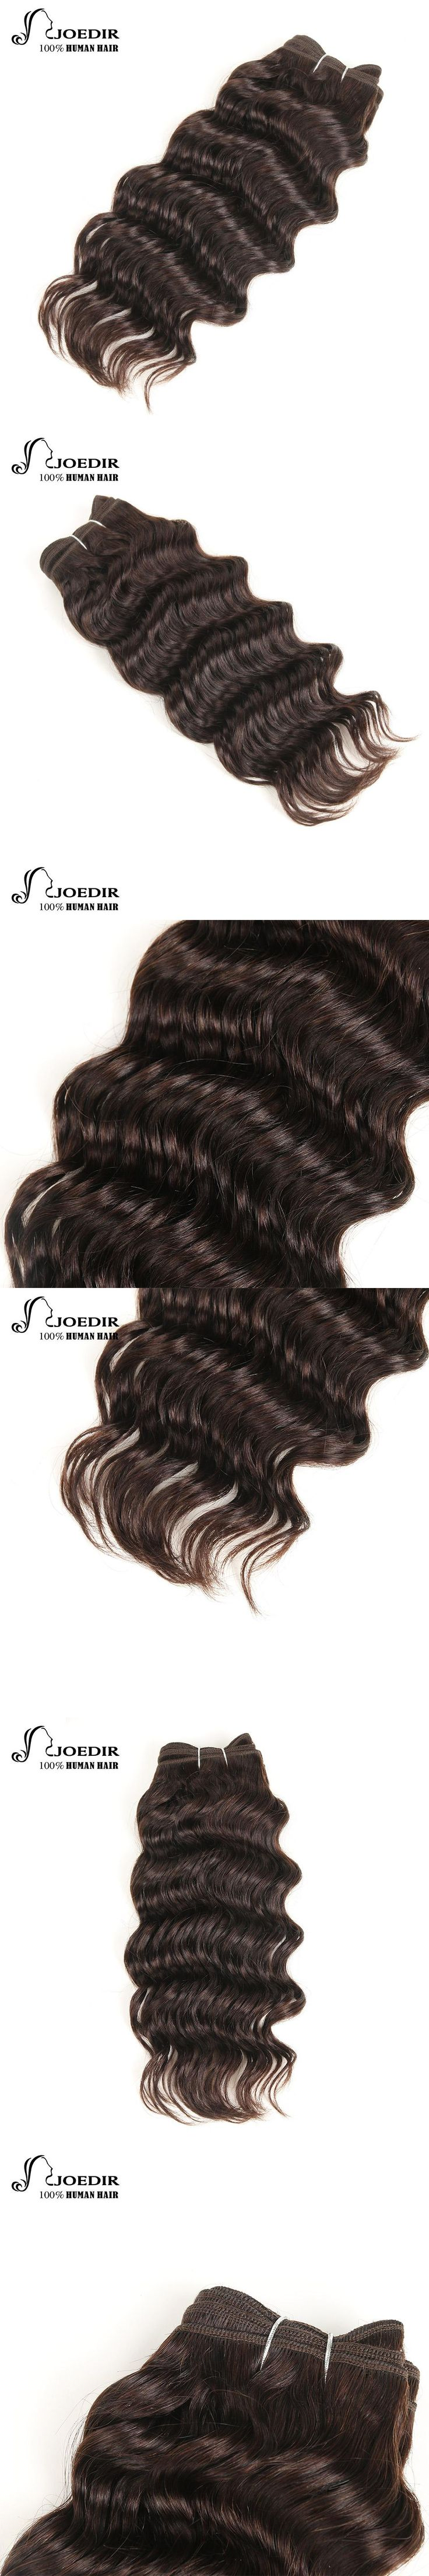 Joedir Pre-Colored Brazilian Deep Wave Hair 100% Human Hair Bundles Remy Weave Darkest Brown & Chocolate Brown Free Shipping